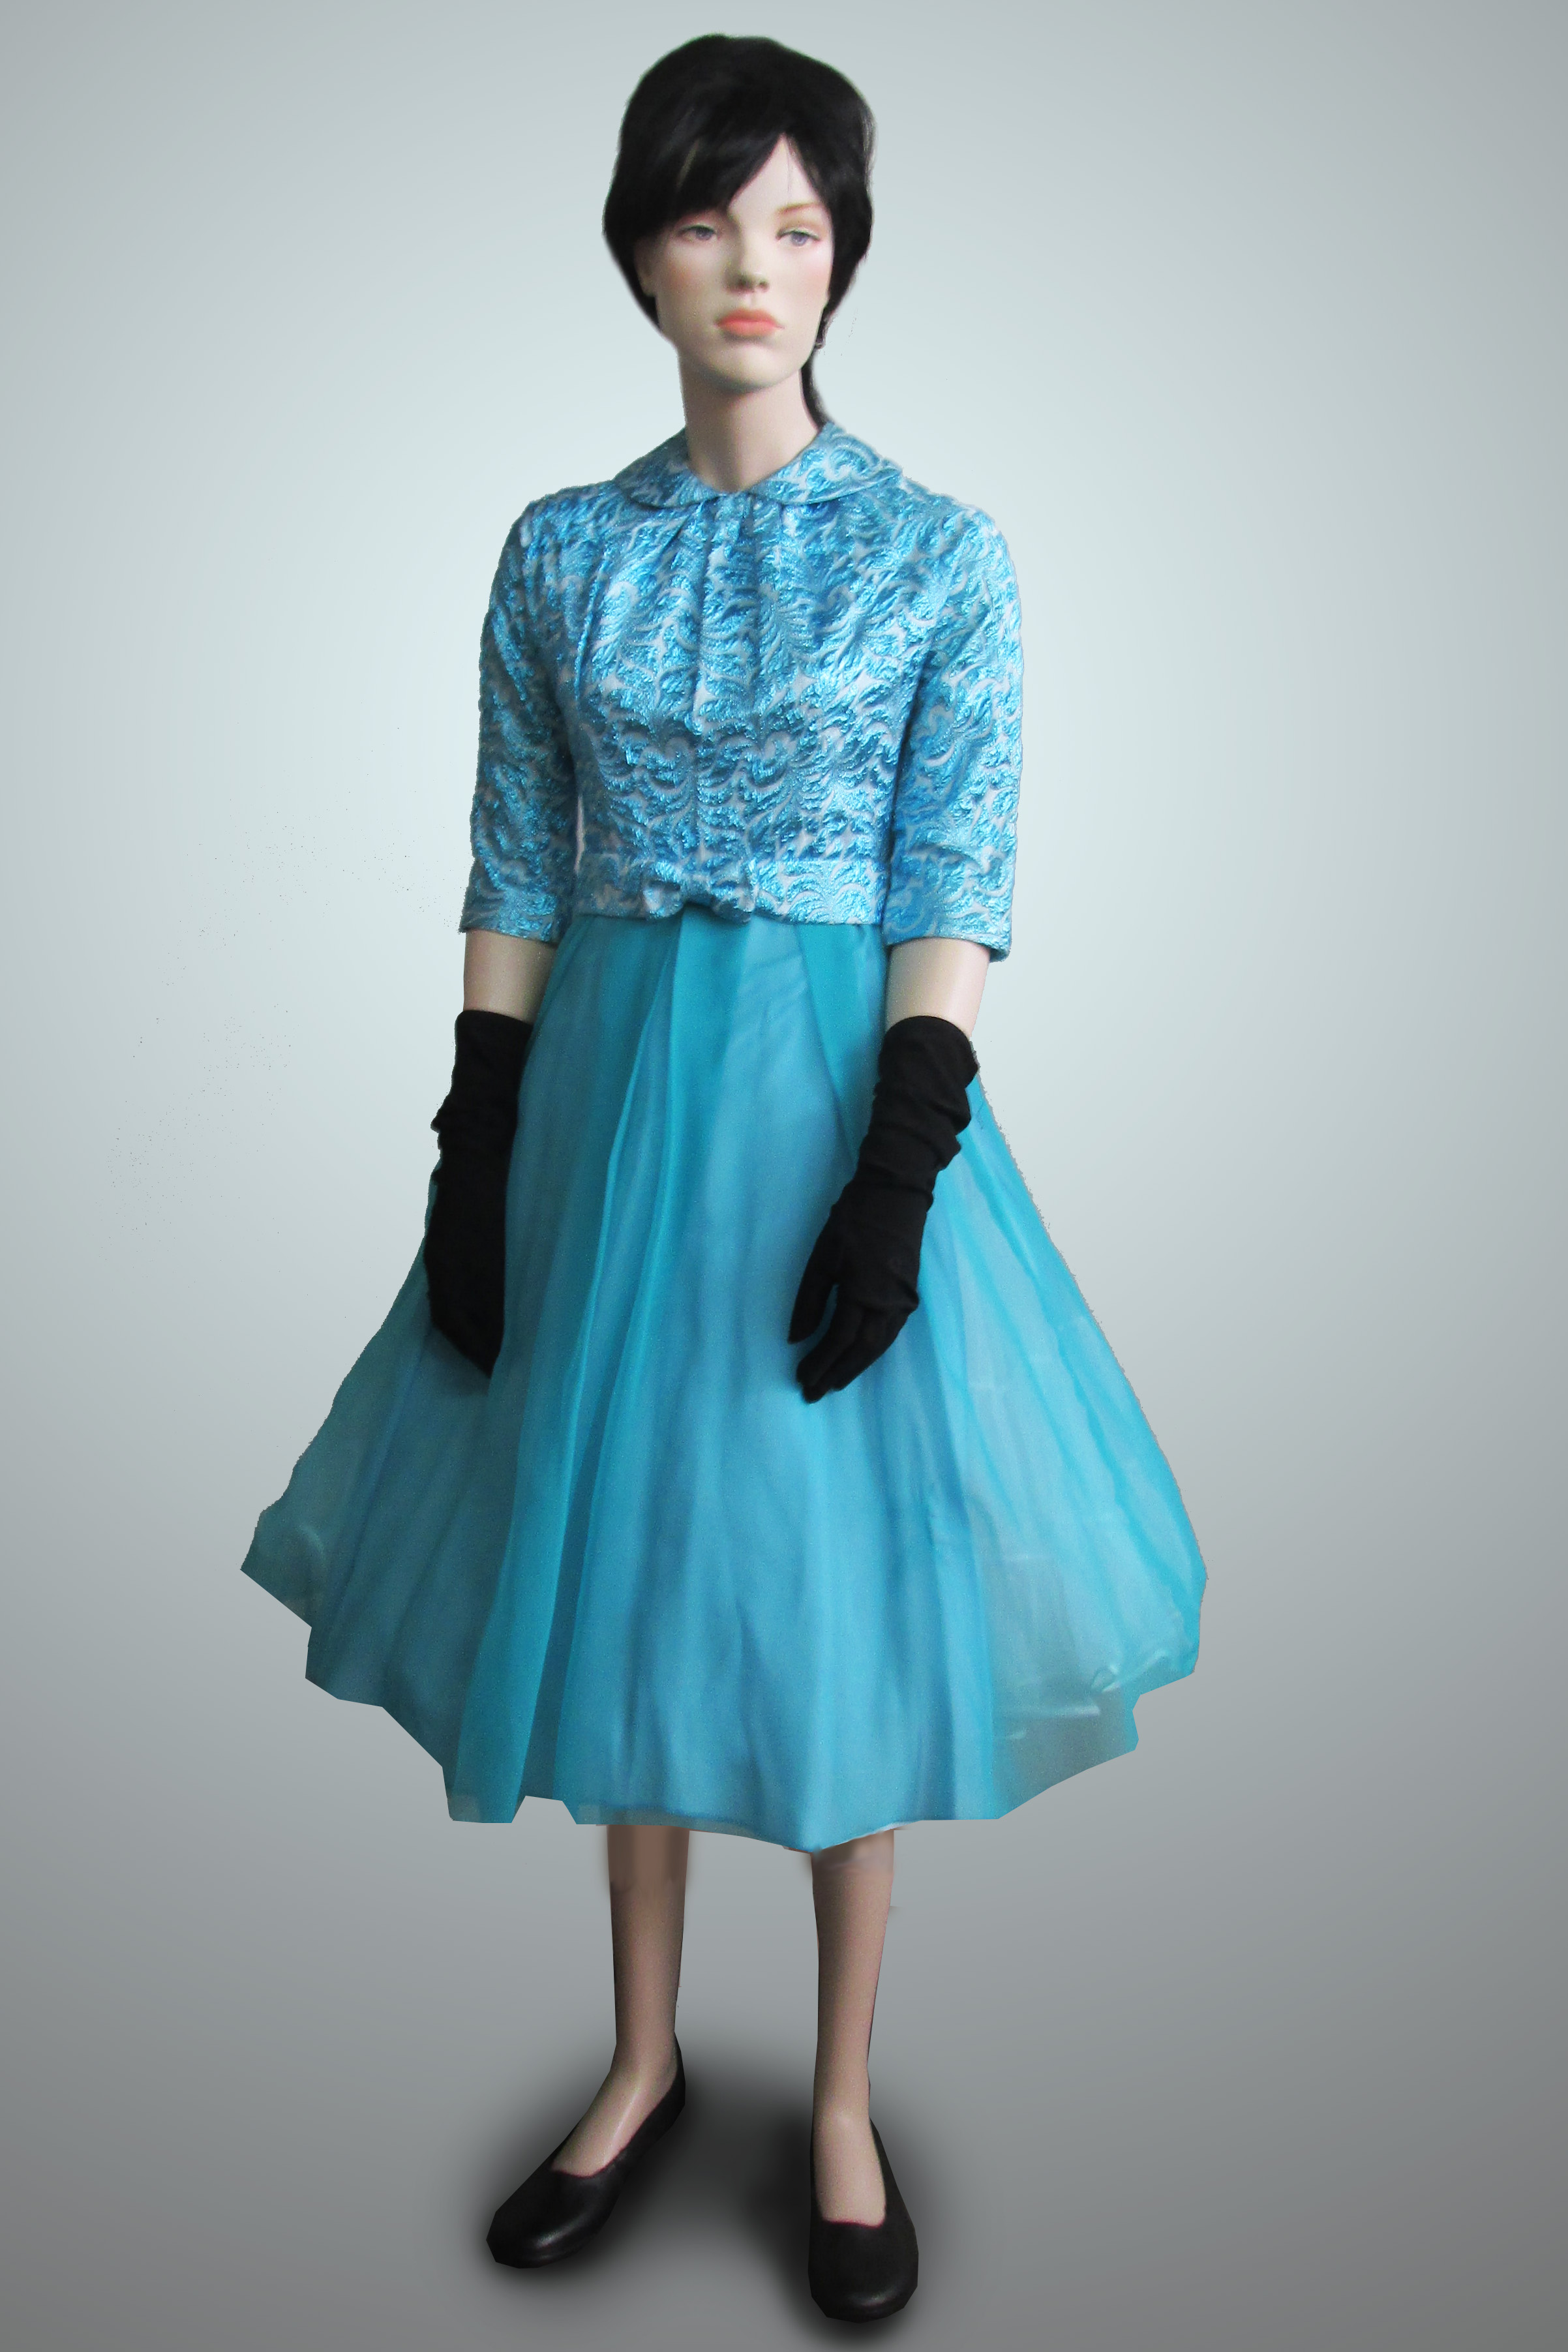 Party Dress Turquoise Metallic Bodice Tulle Skirt 1950s/60s